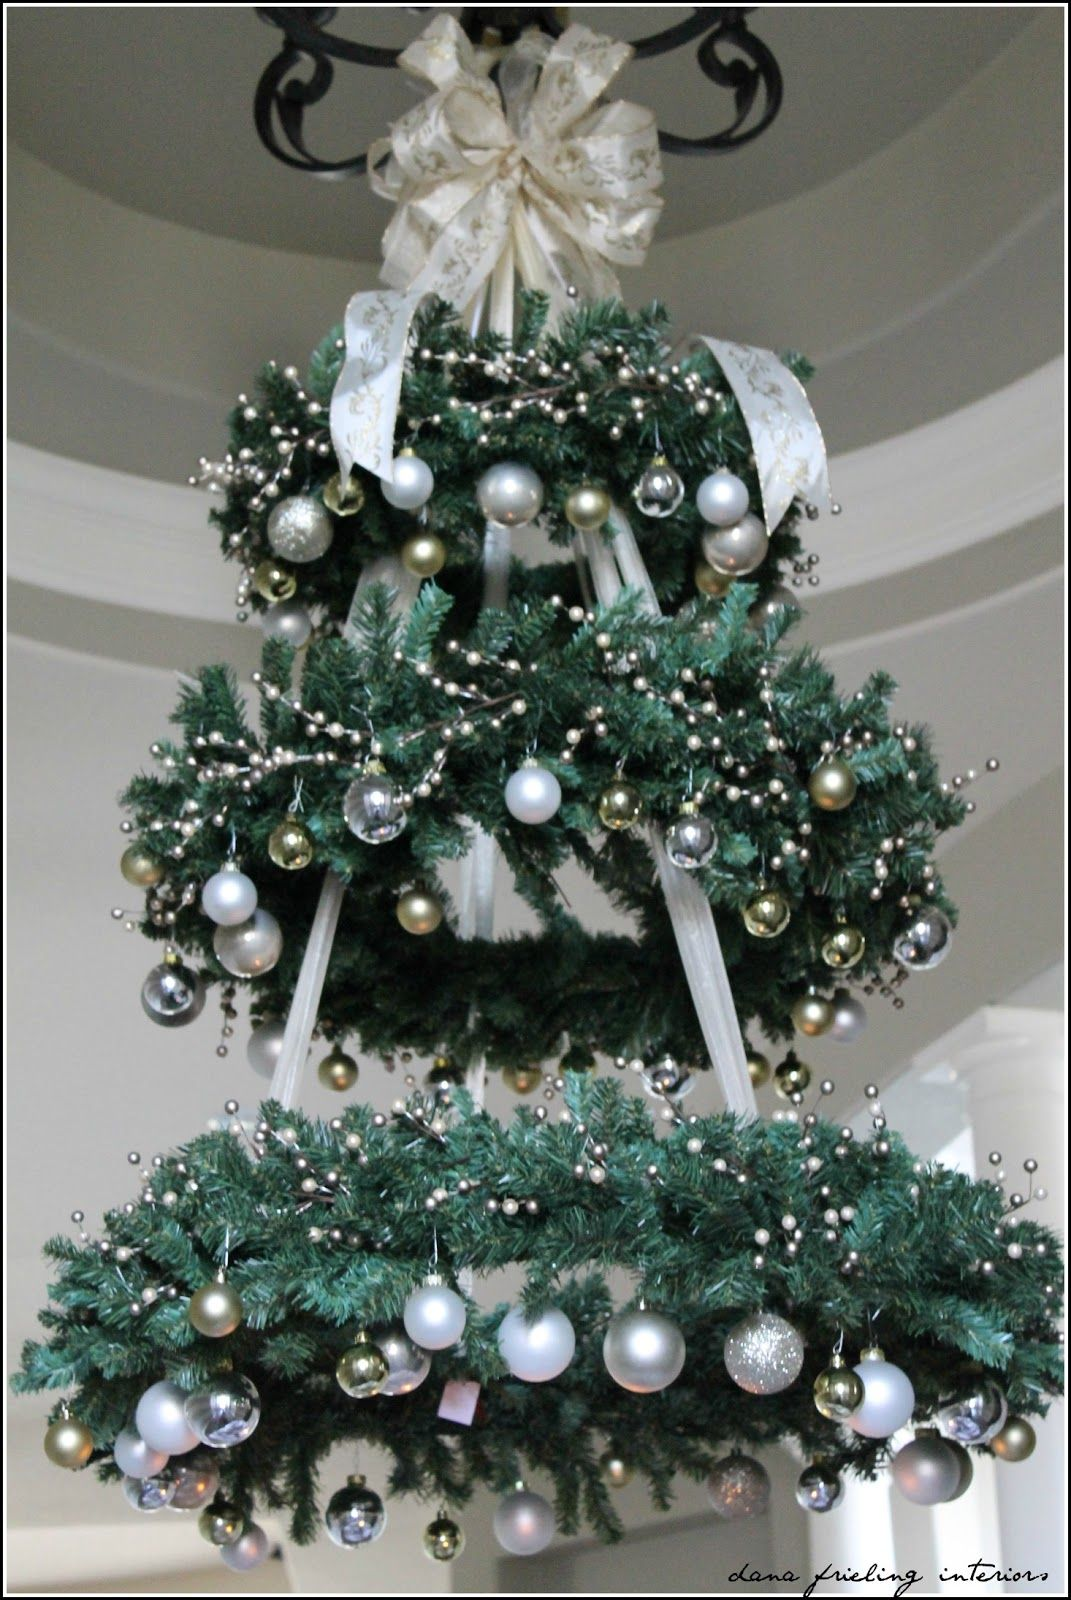 for me this rates up there with one of the prettiest Christmas decorations  I've seen pinned.A Hanging Christmas Wreath Tree idea.